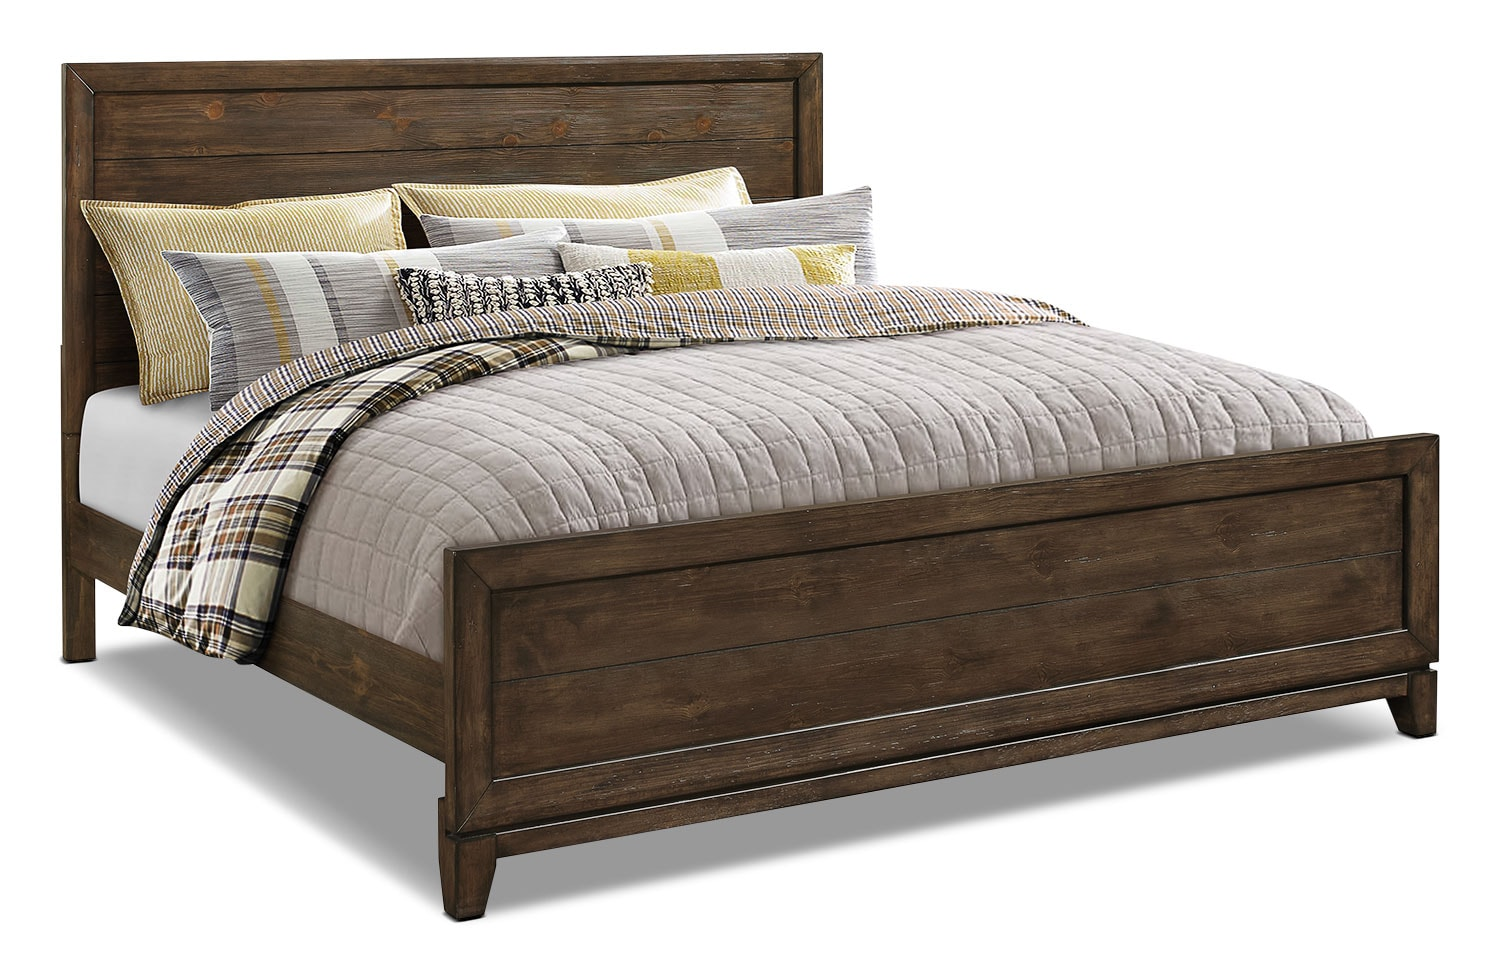 Bedroom Furniture - Tacoma King Bed